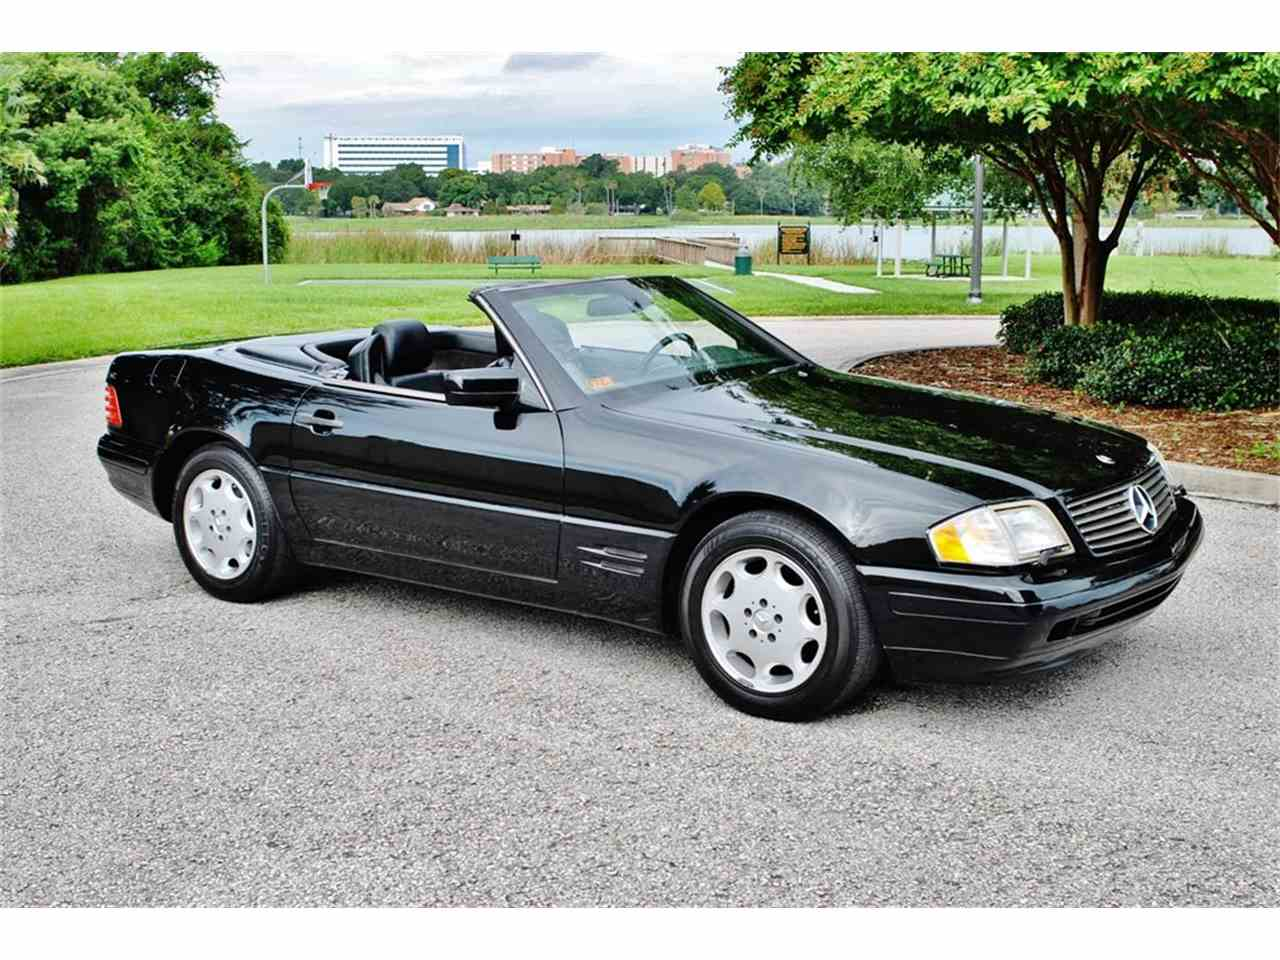 Large Picture of '97 Mercedes-Benz SL-Class located in Lakeland Florida - $13,500.00 - KCTC